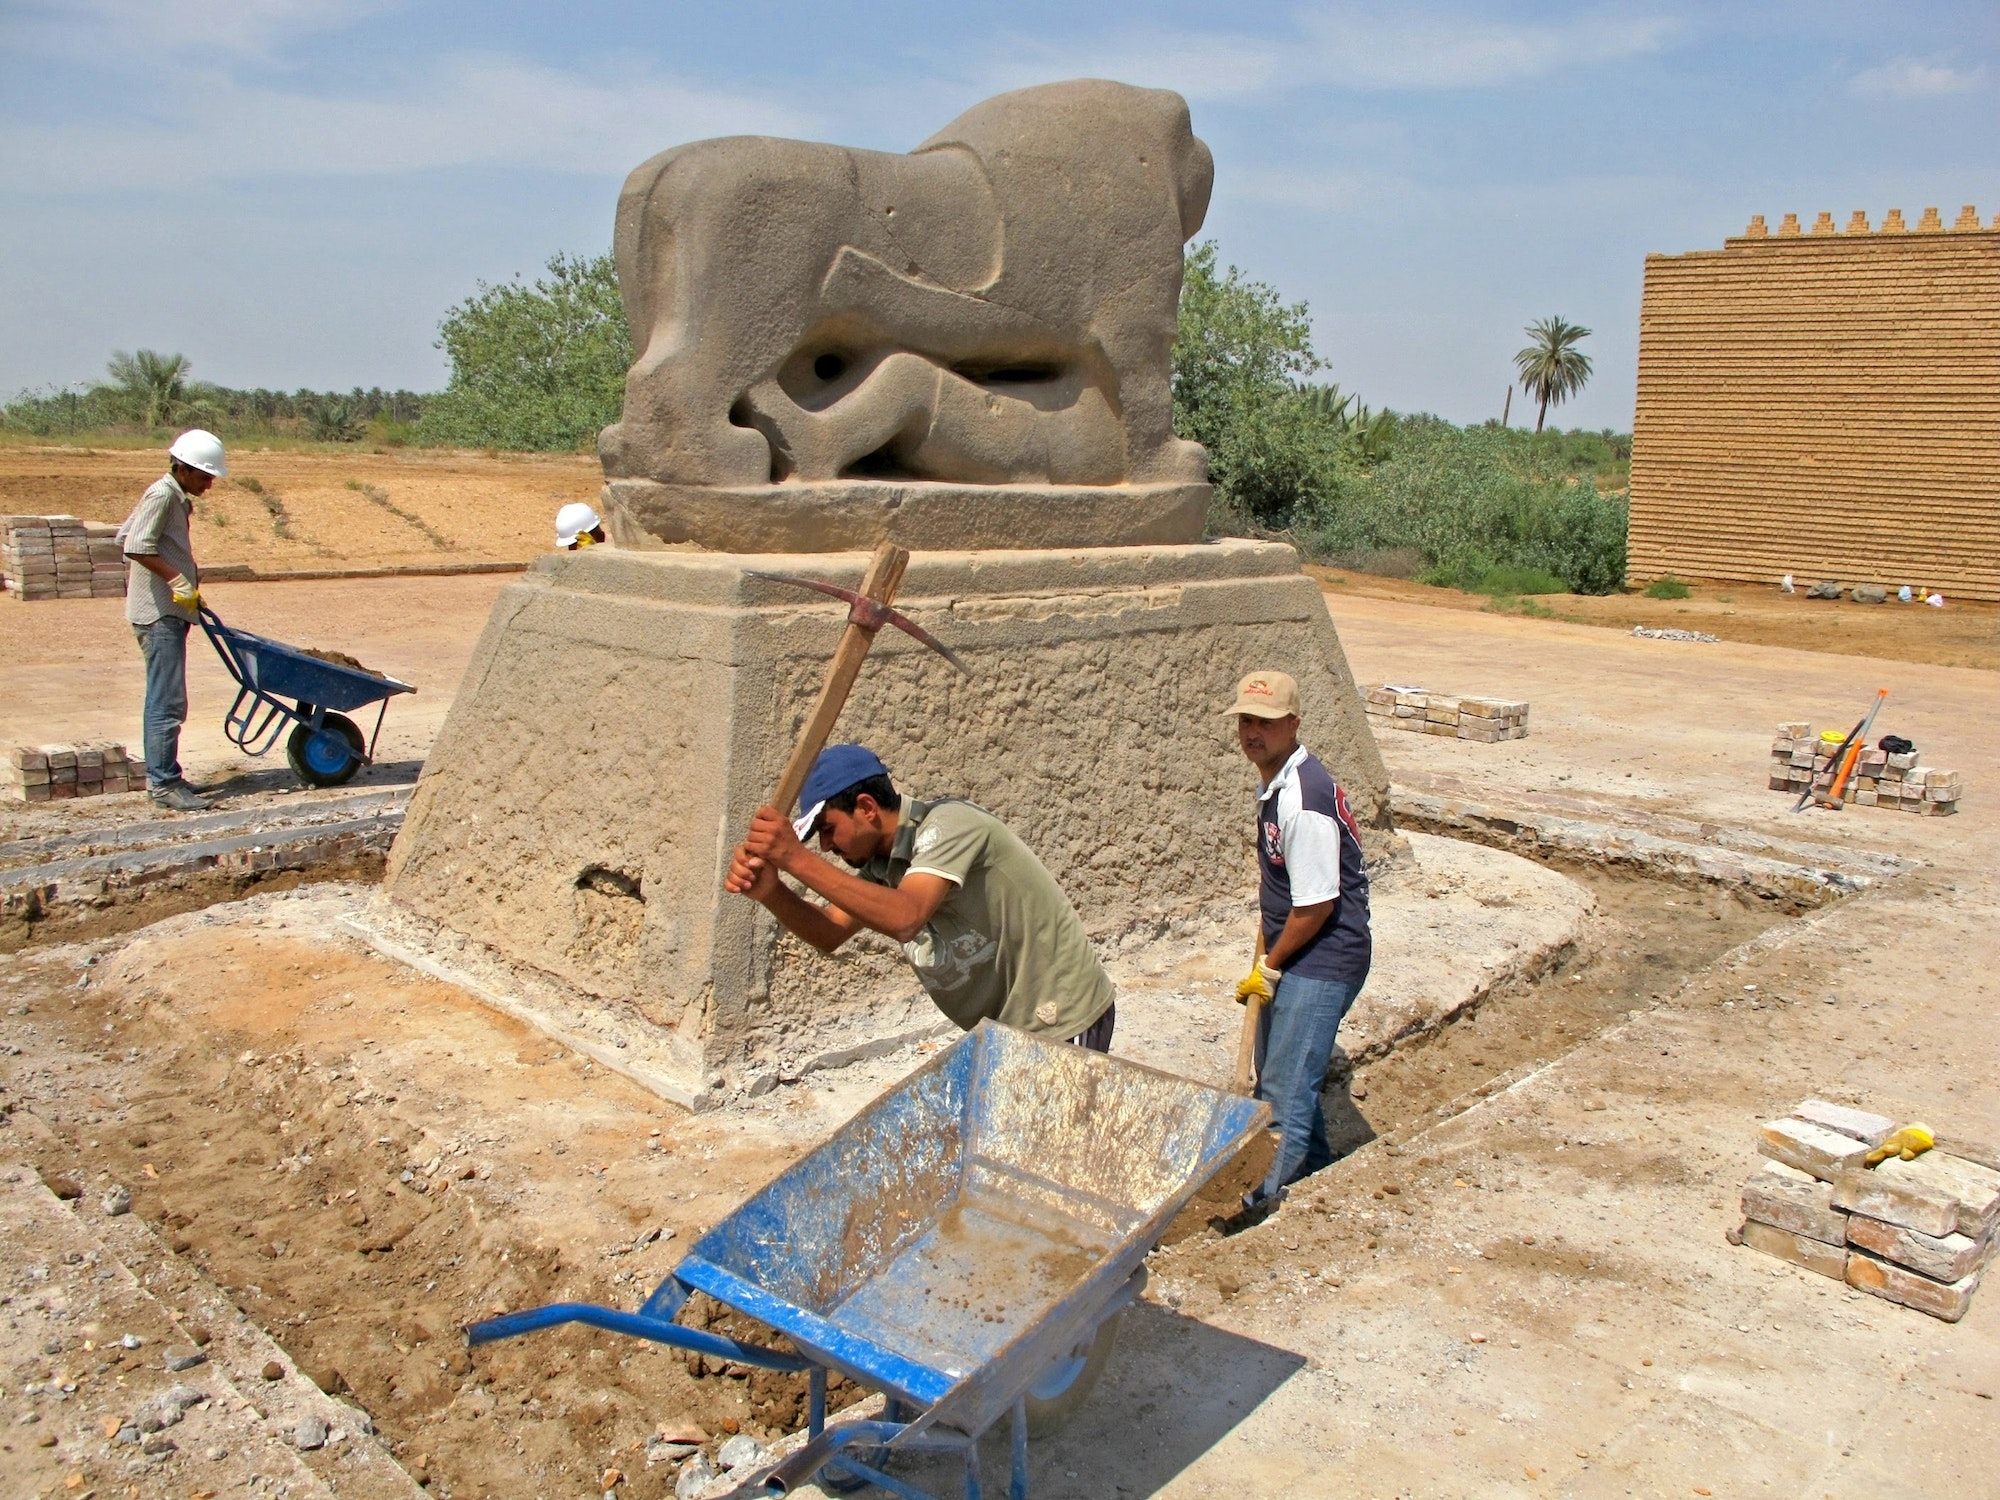 The online platform highlights efforts to conserve Iraq's cultural heritage under threat, such as the Lion of Babylon, pictured above.